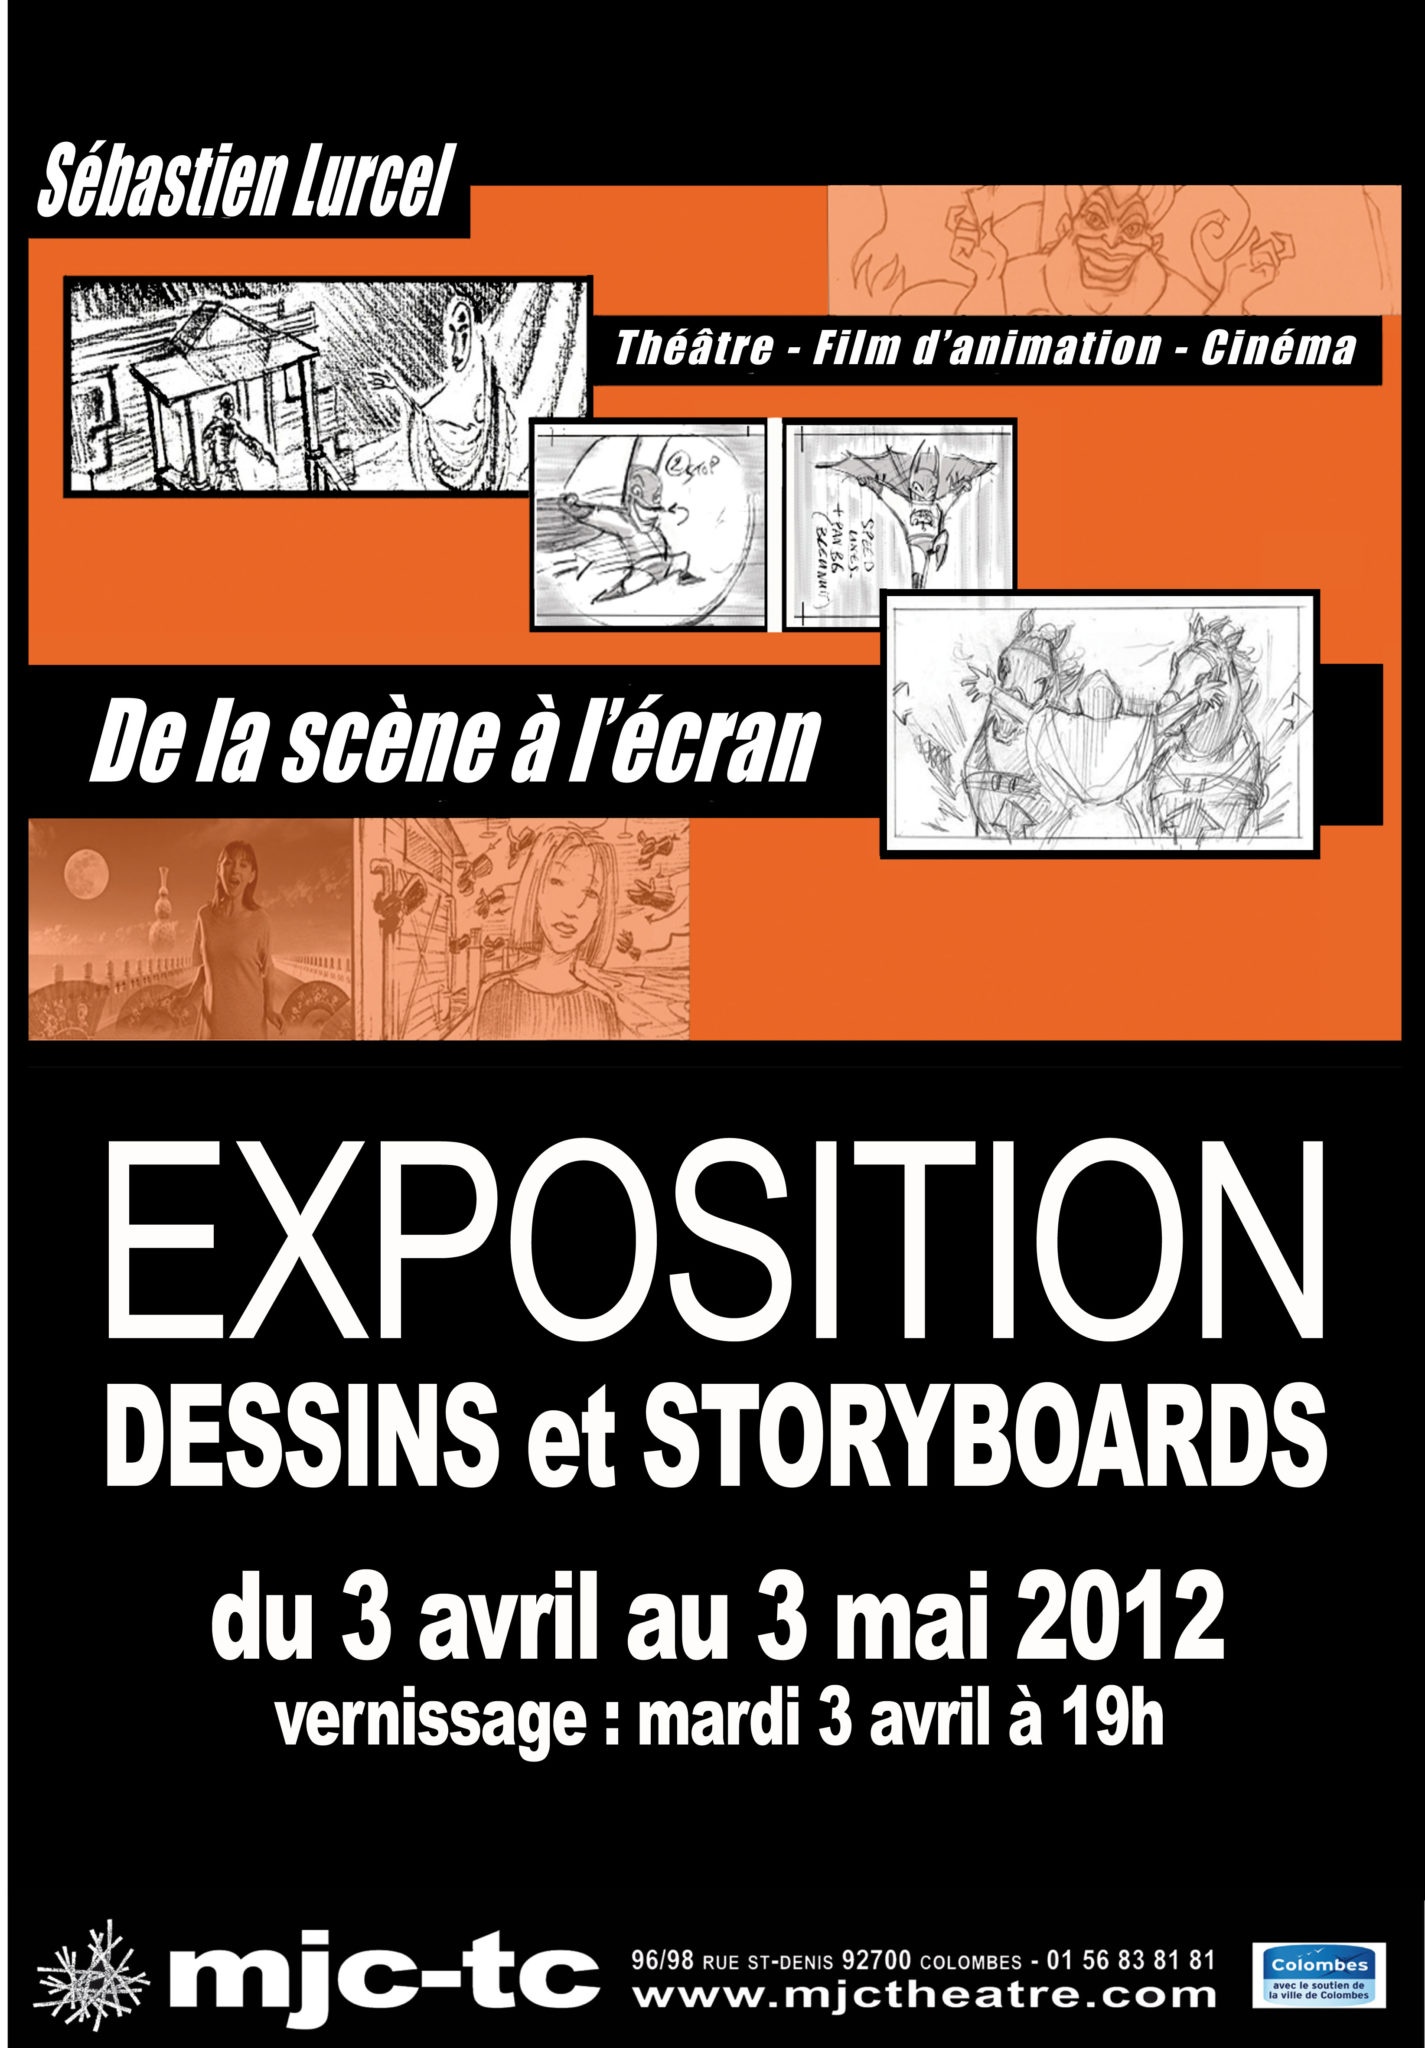 Affiche expo storyboards